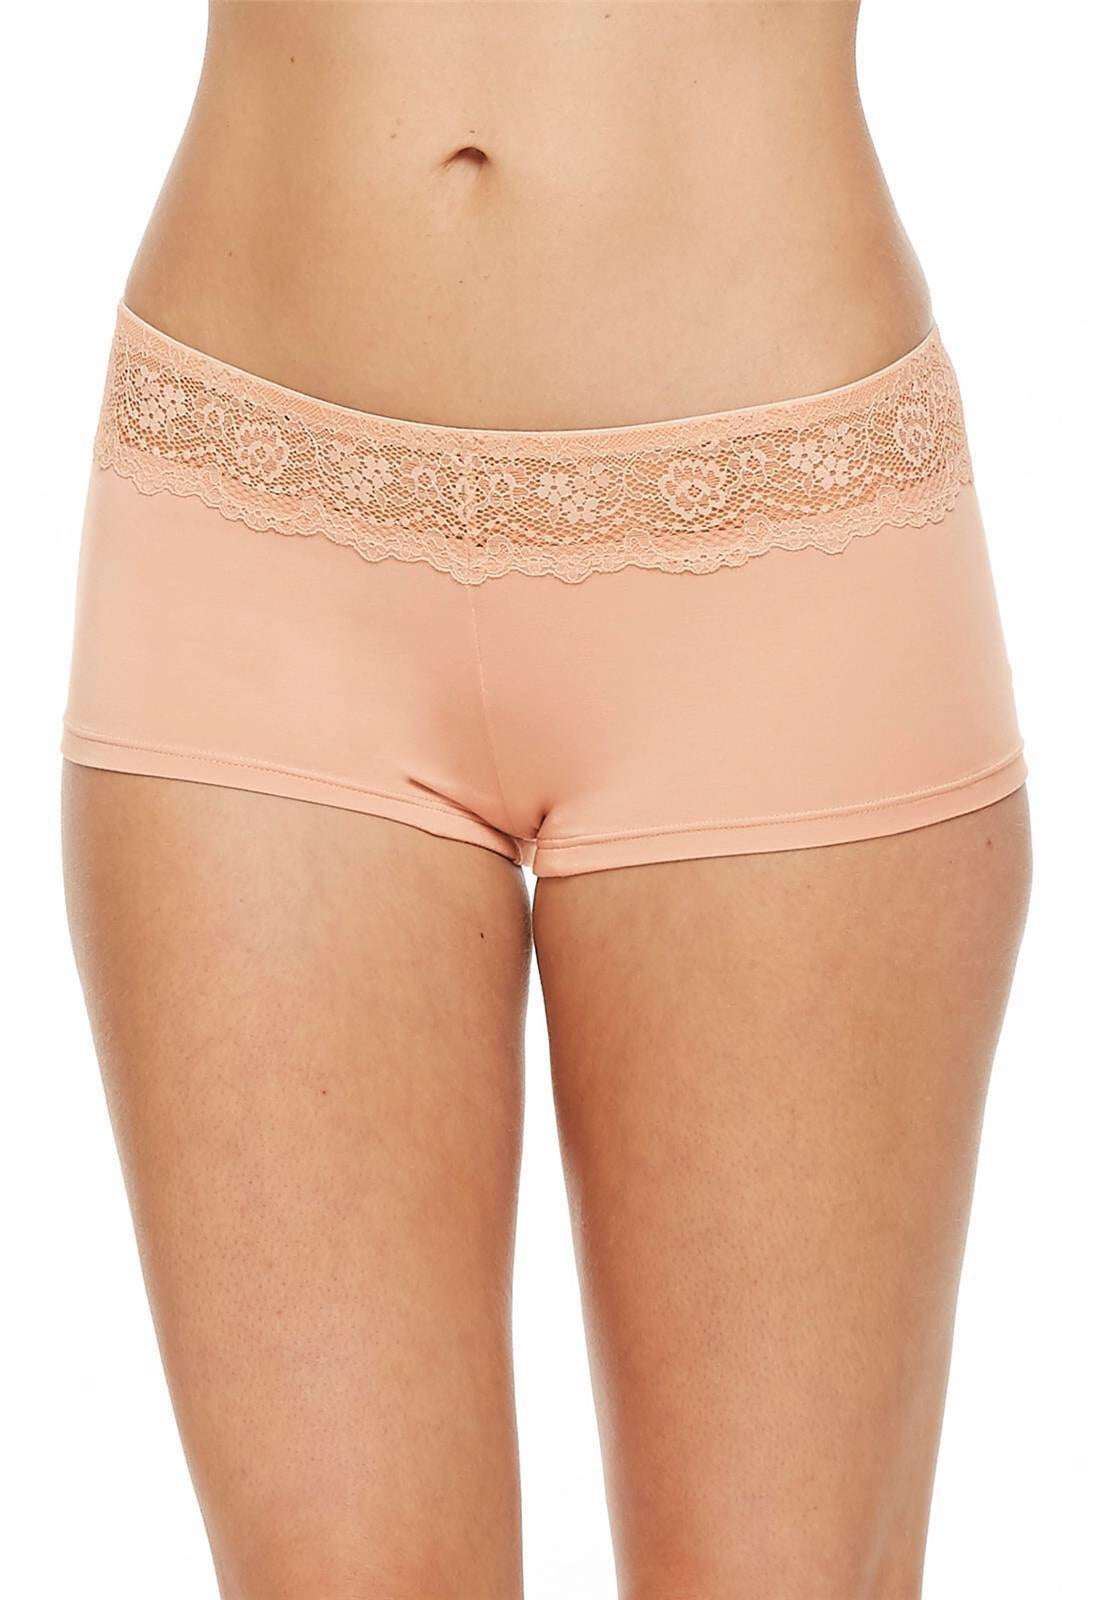 MONTELLE BODYBLISS BREEZE COLLECTION BOYSHORT IN SEASHELL